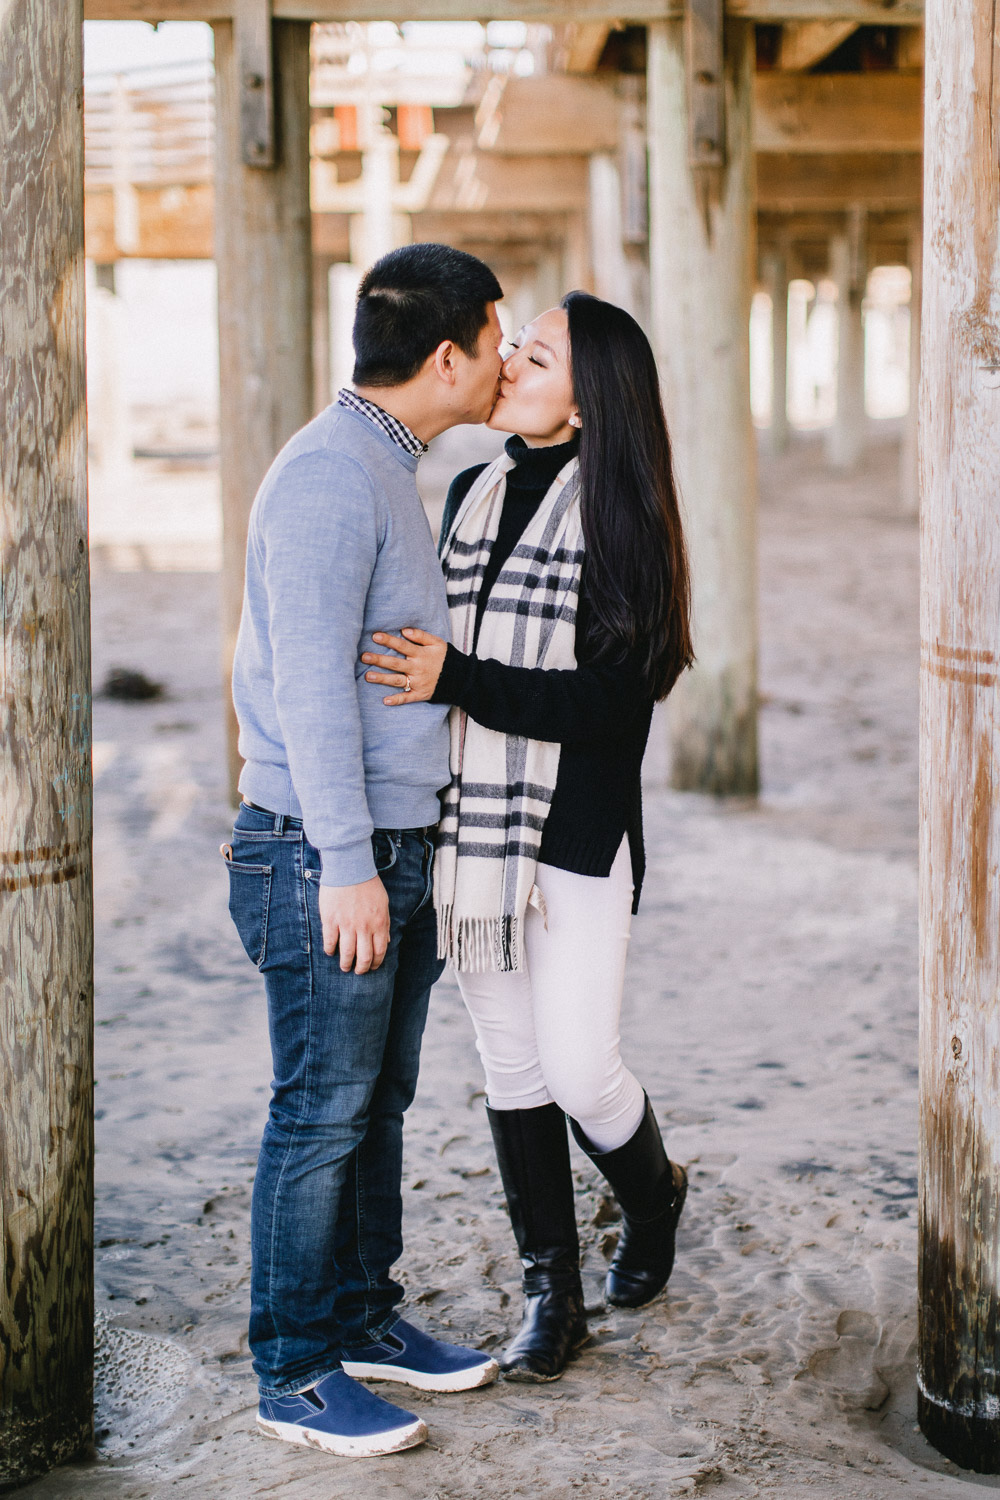 Pismo-Beach-Couples-Photography-Session-With-Puppy-112.jpg